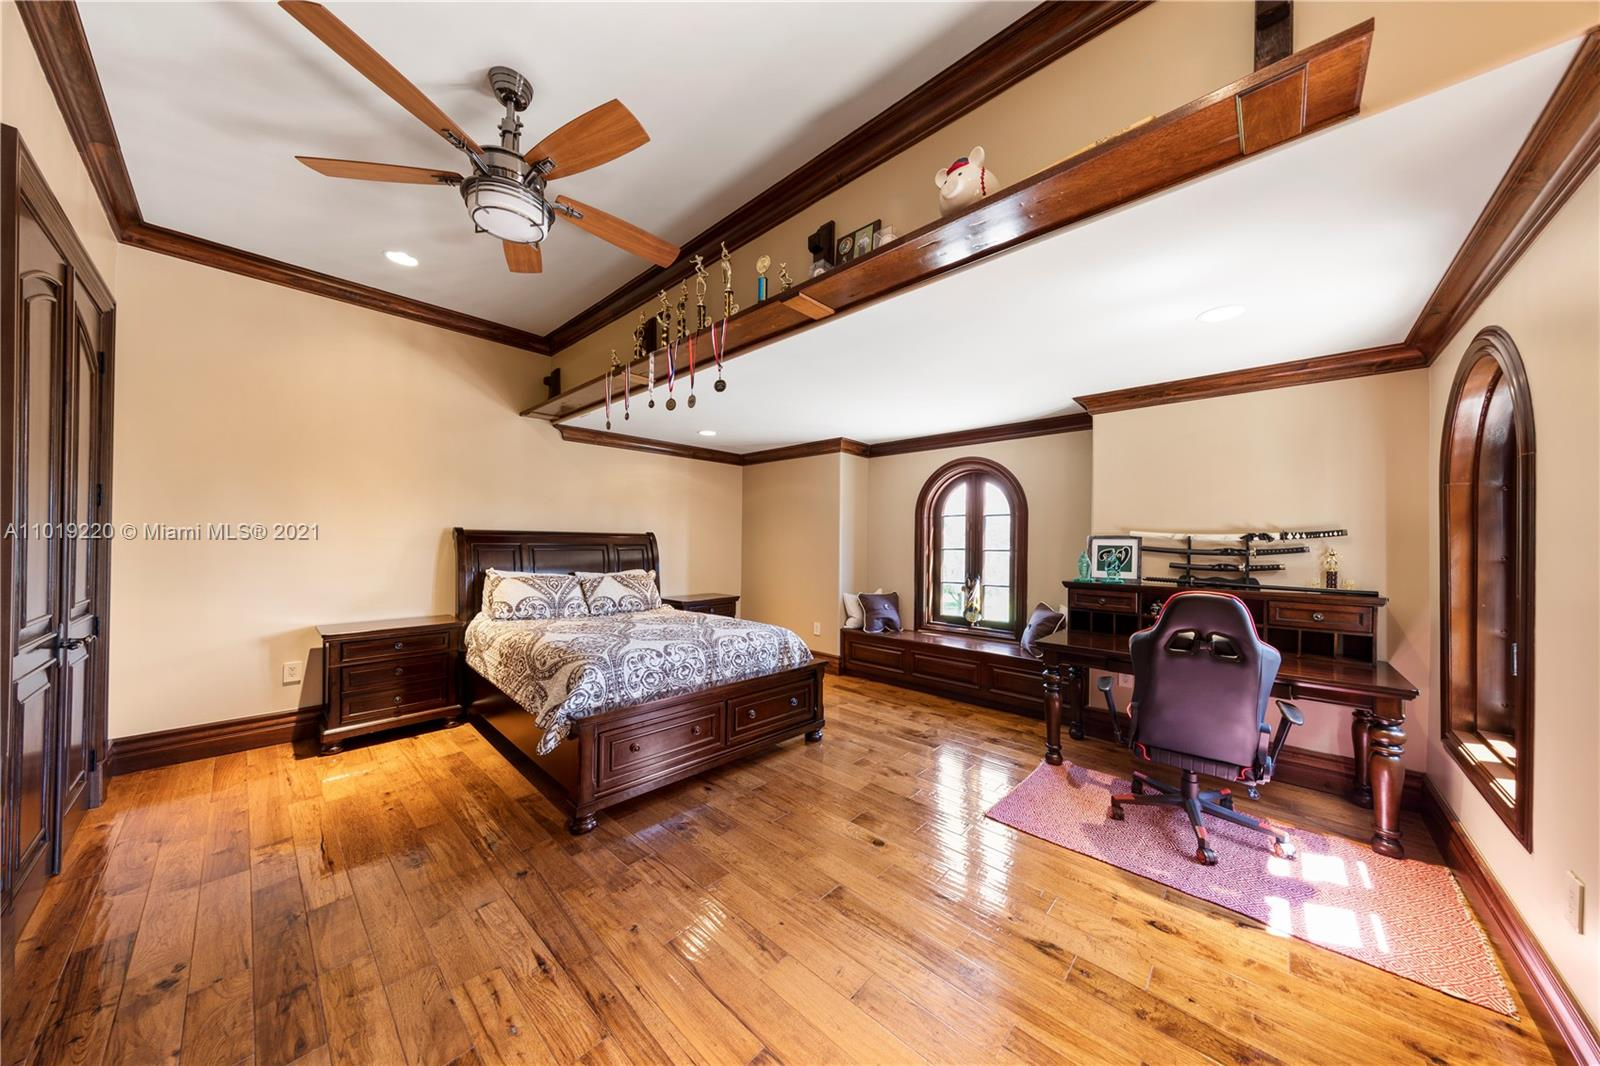 THE KIDS ROOMS ARE IDENTICAL IN SIZE, SO NO ROOM FIGHTING! BOTH HAVE A TROPHY WALL, FINISHED CLOSETS, GREAT LIGHTING WITH DESK SPACE.THEY SHARE A JACK AND JILL BATH AS WELL AS AN AMAZING TERRACE.